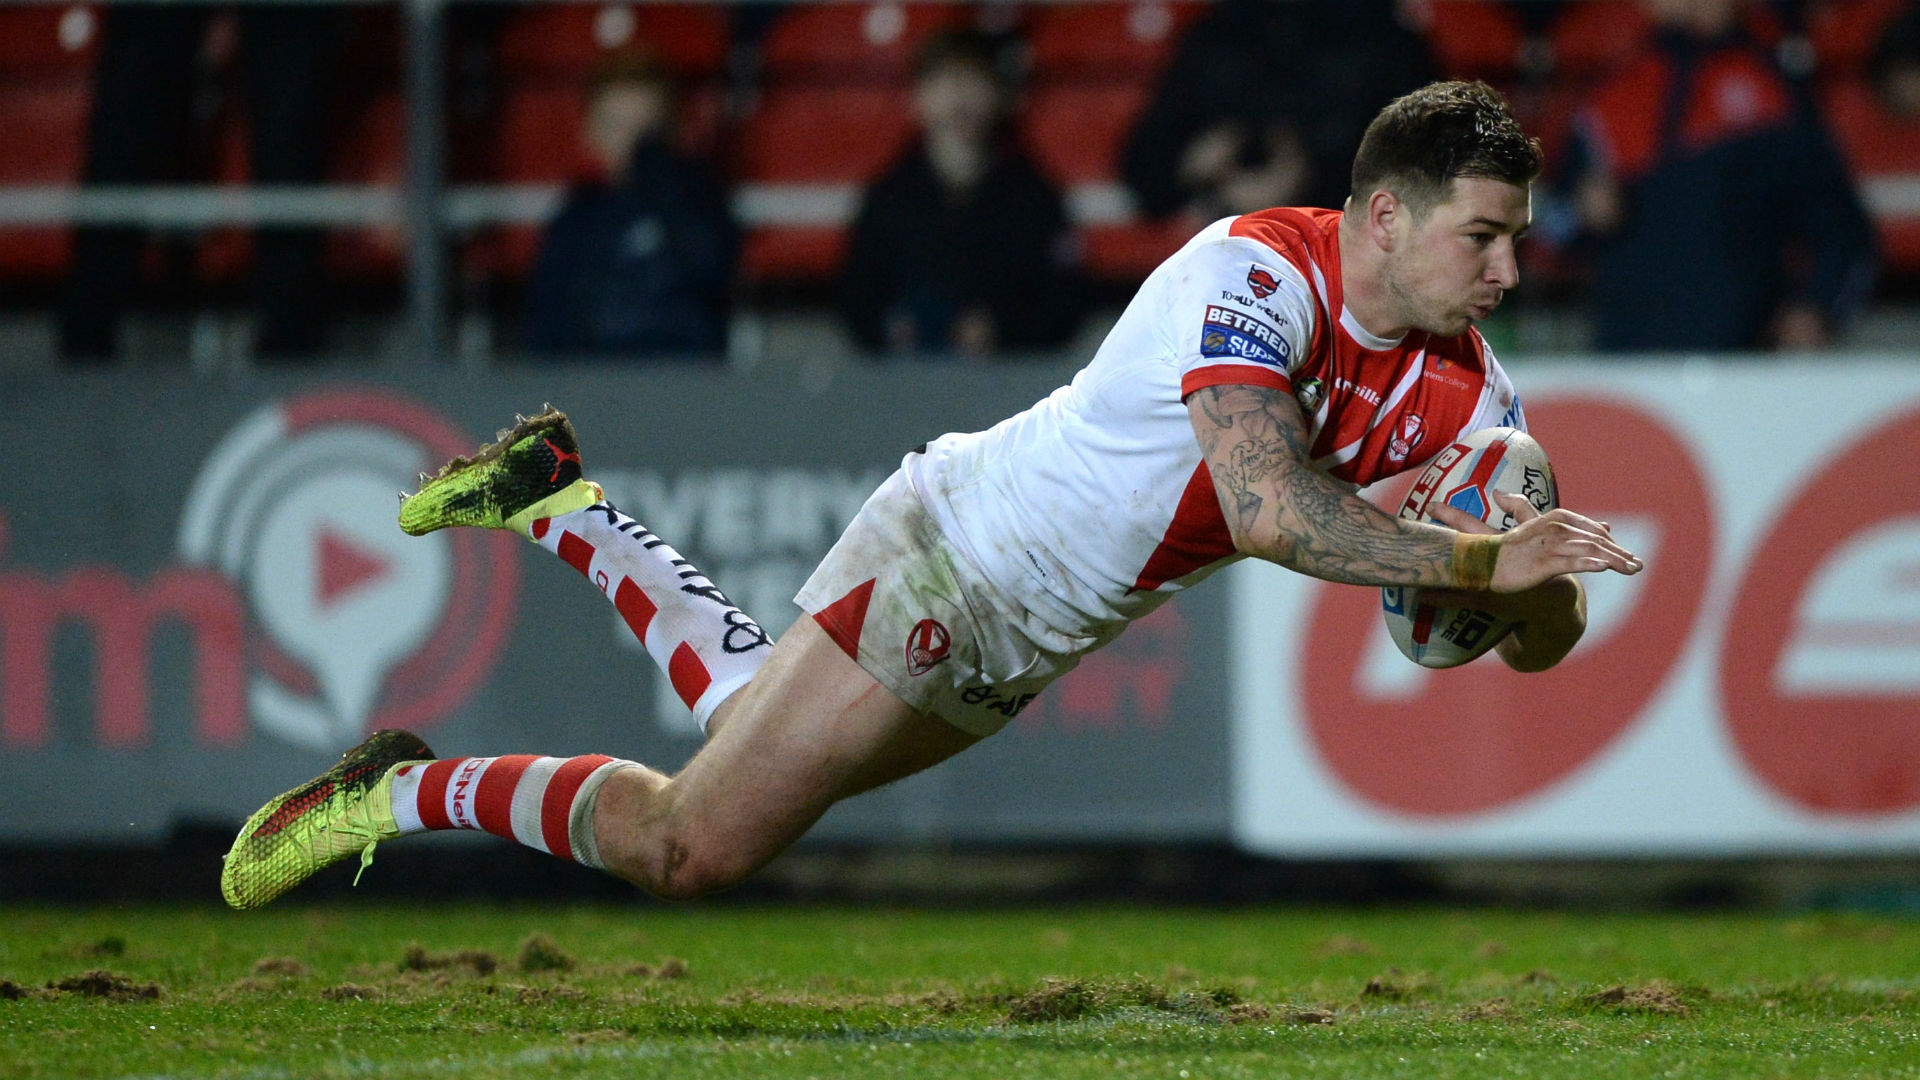 St Helens rolled on in their impressive start to the Super League season, with Mark Percival starring against Warrington Wolves.